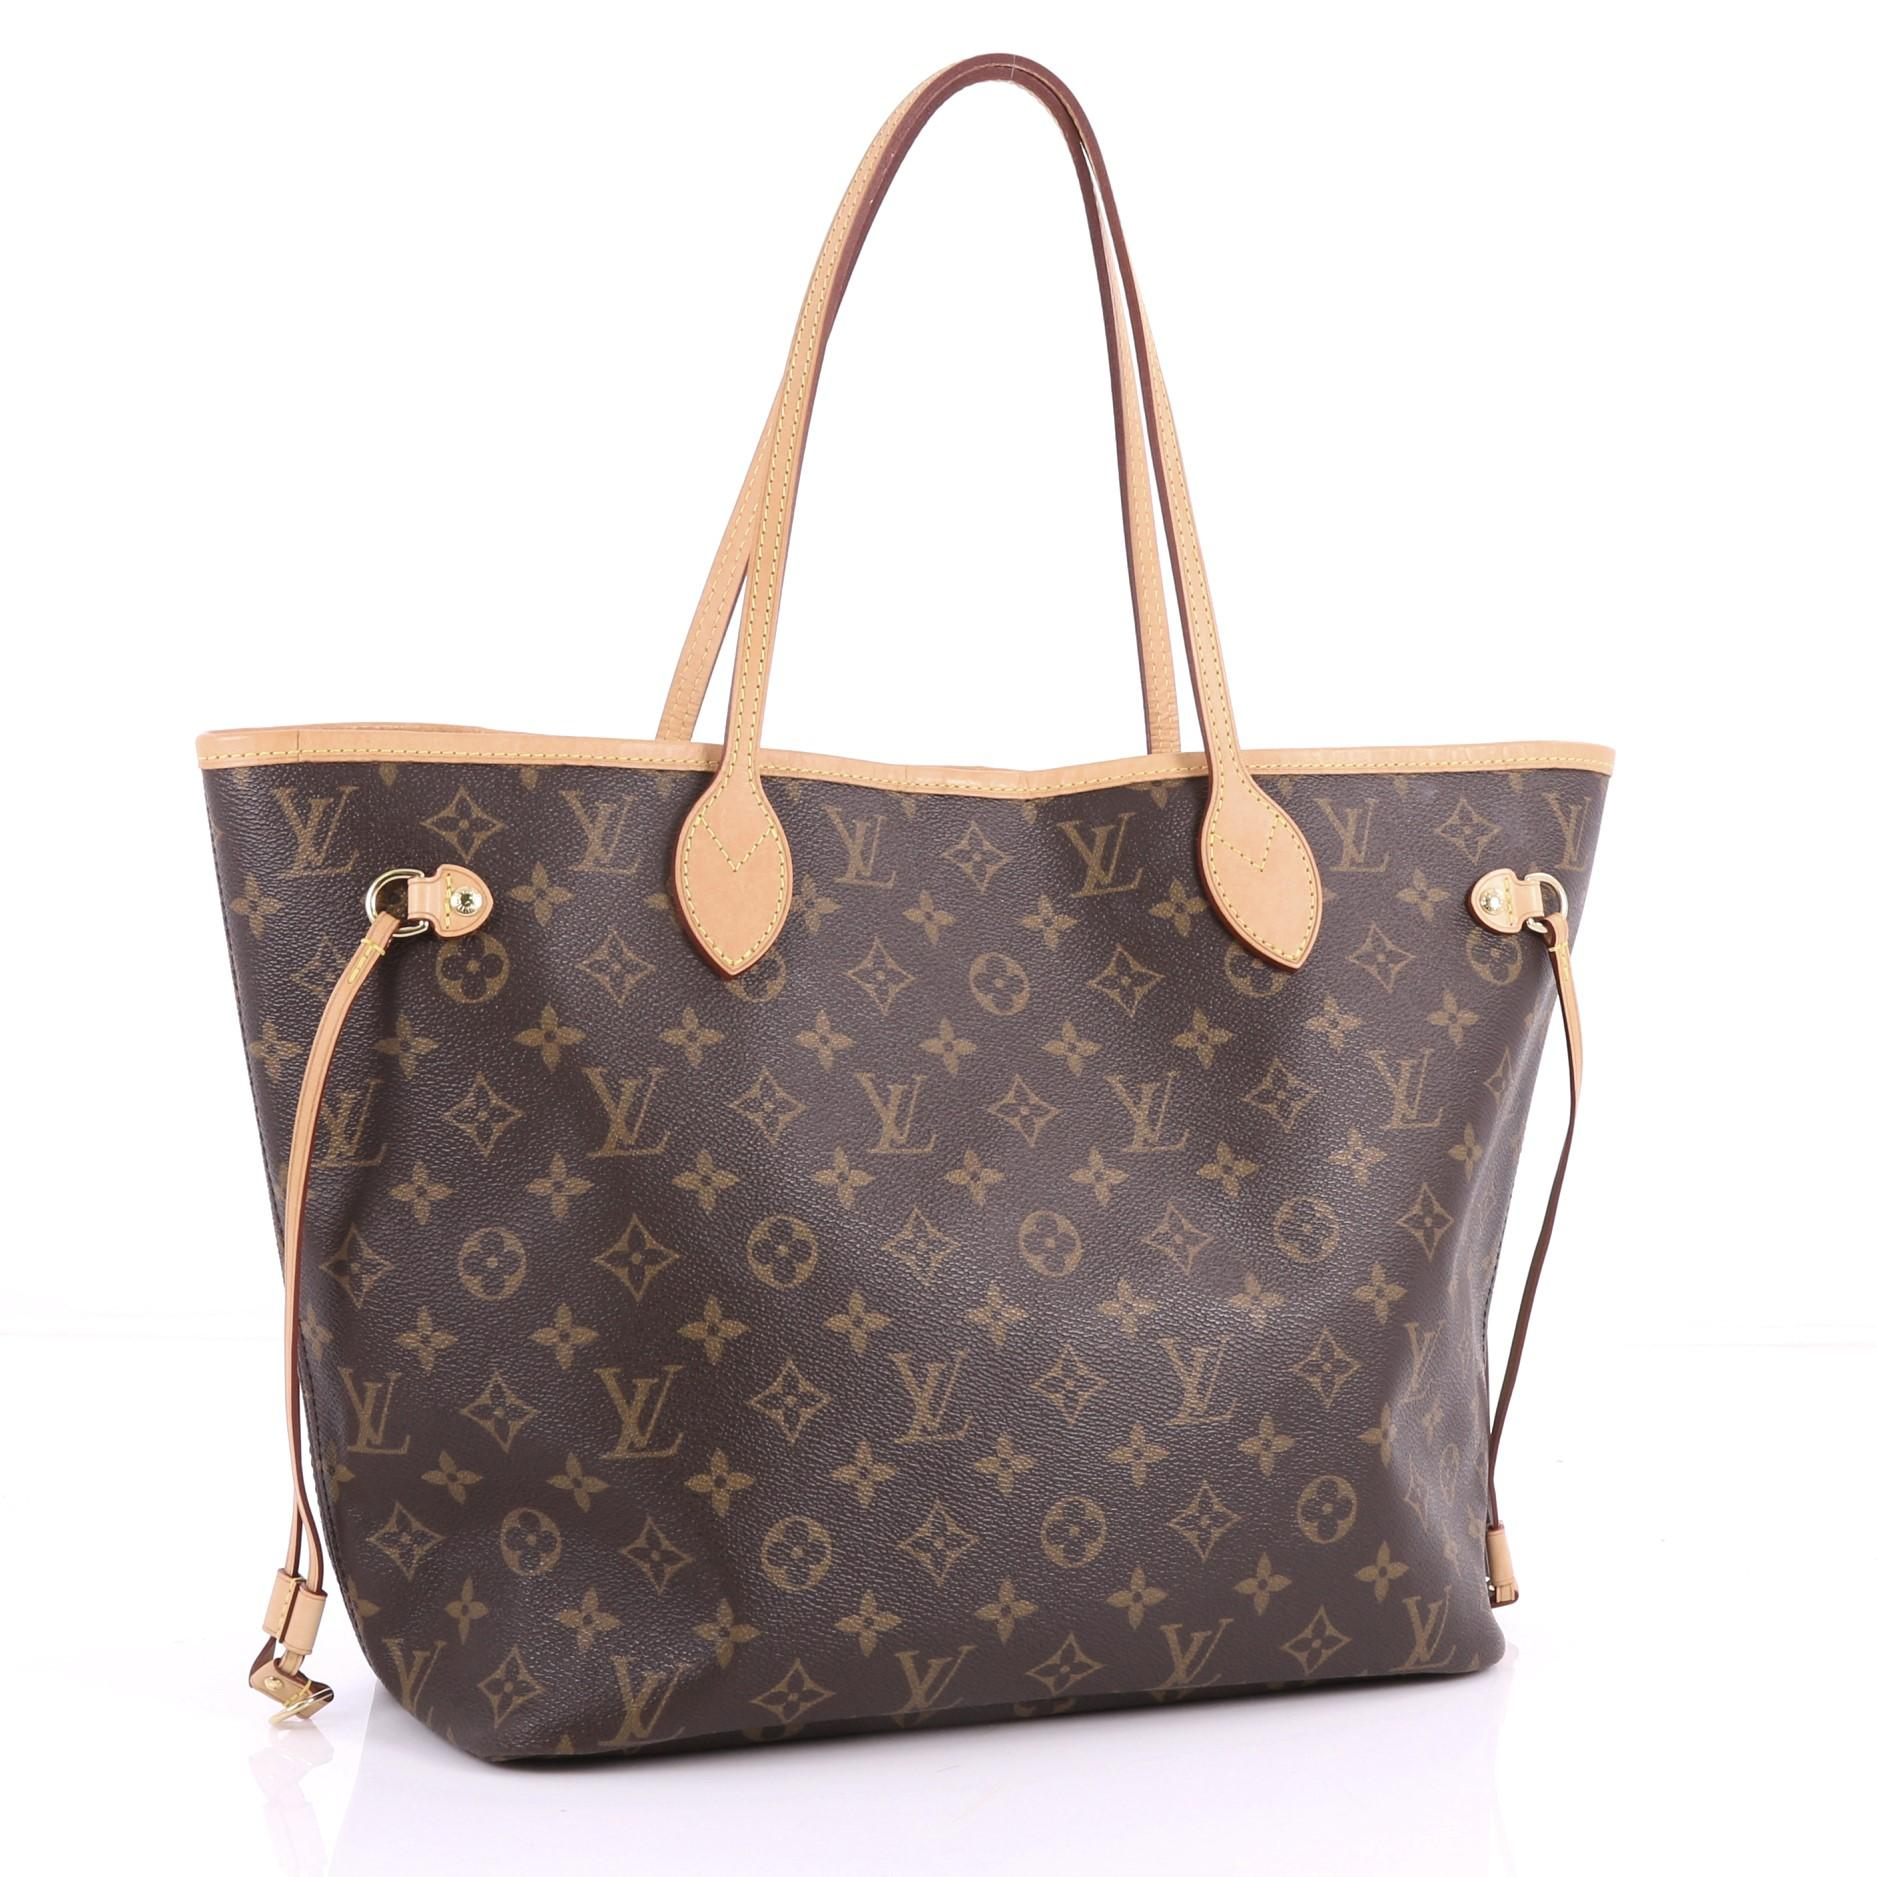 7950a2ecf41e Louis Vuitton Neverfull NM Tote Monogram Canvas MM at 1stdibs